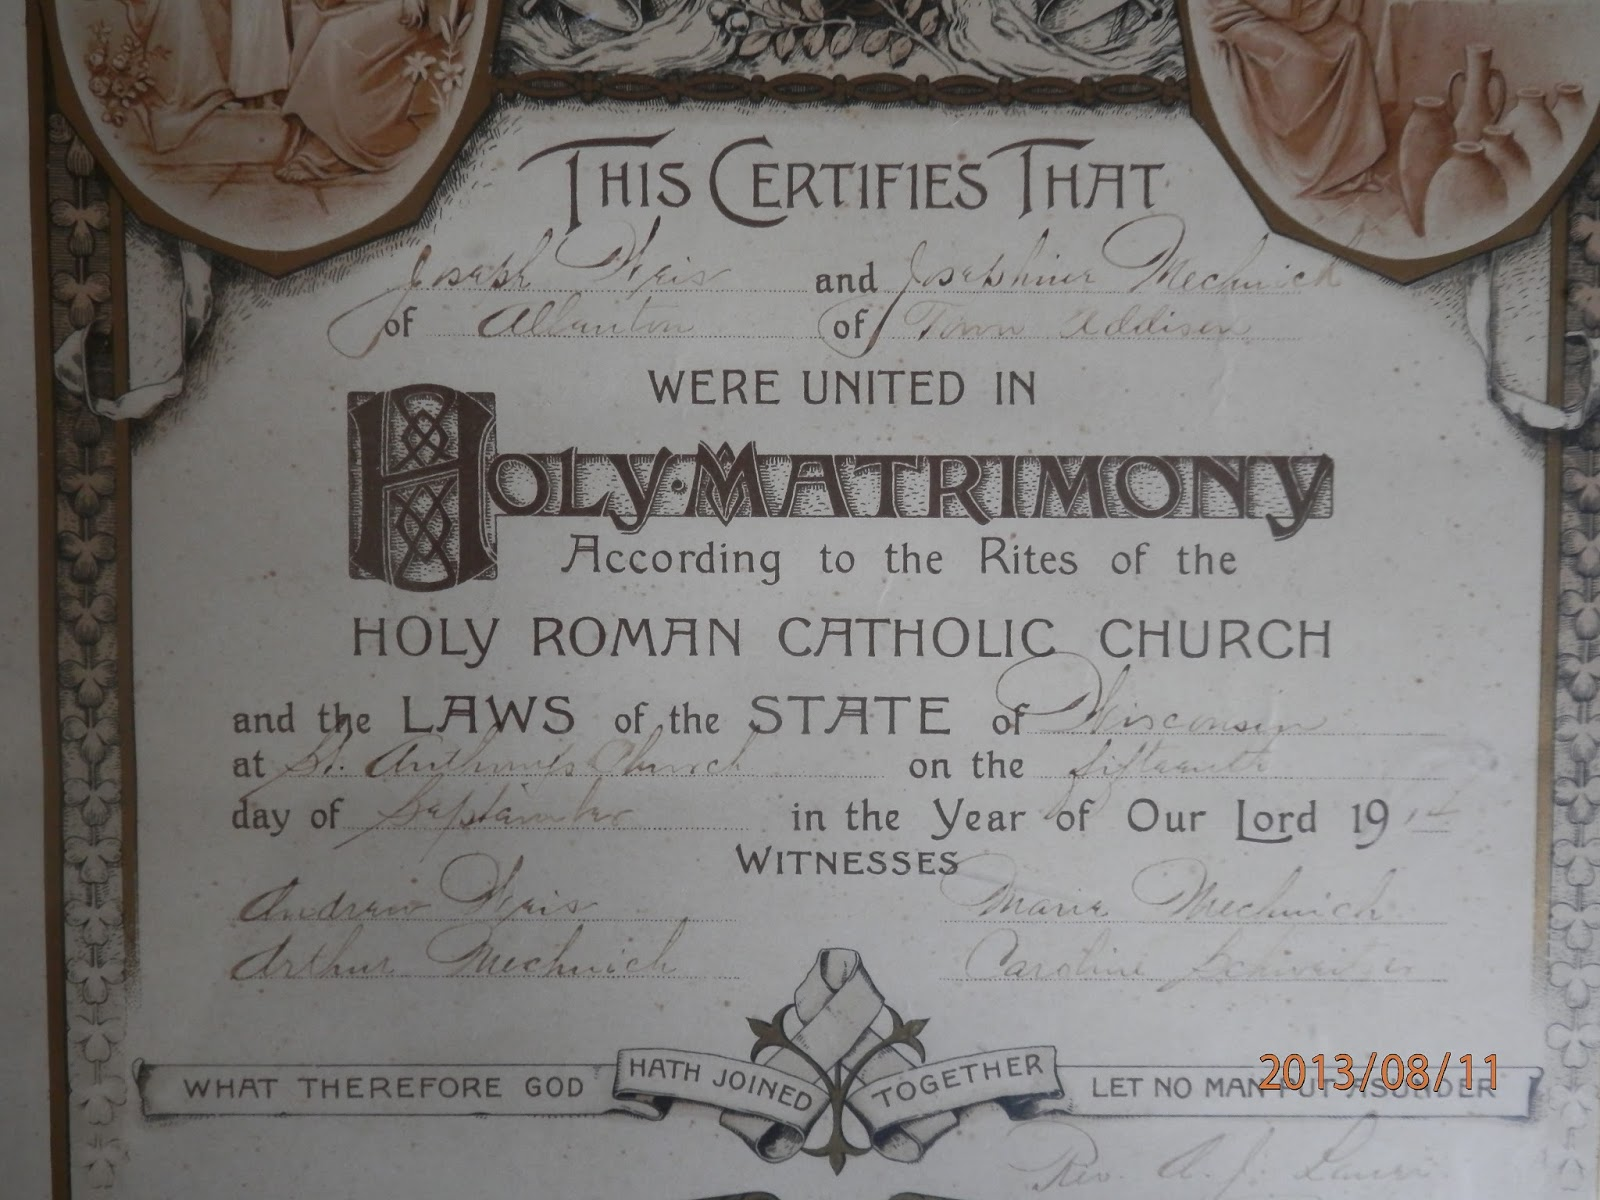 marriage certificate catholic church yesteryear forevers denomination mc actually states